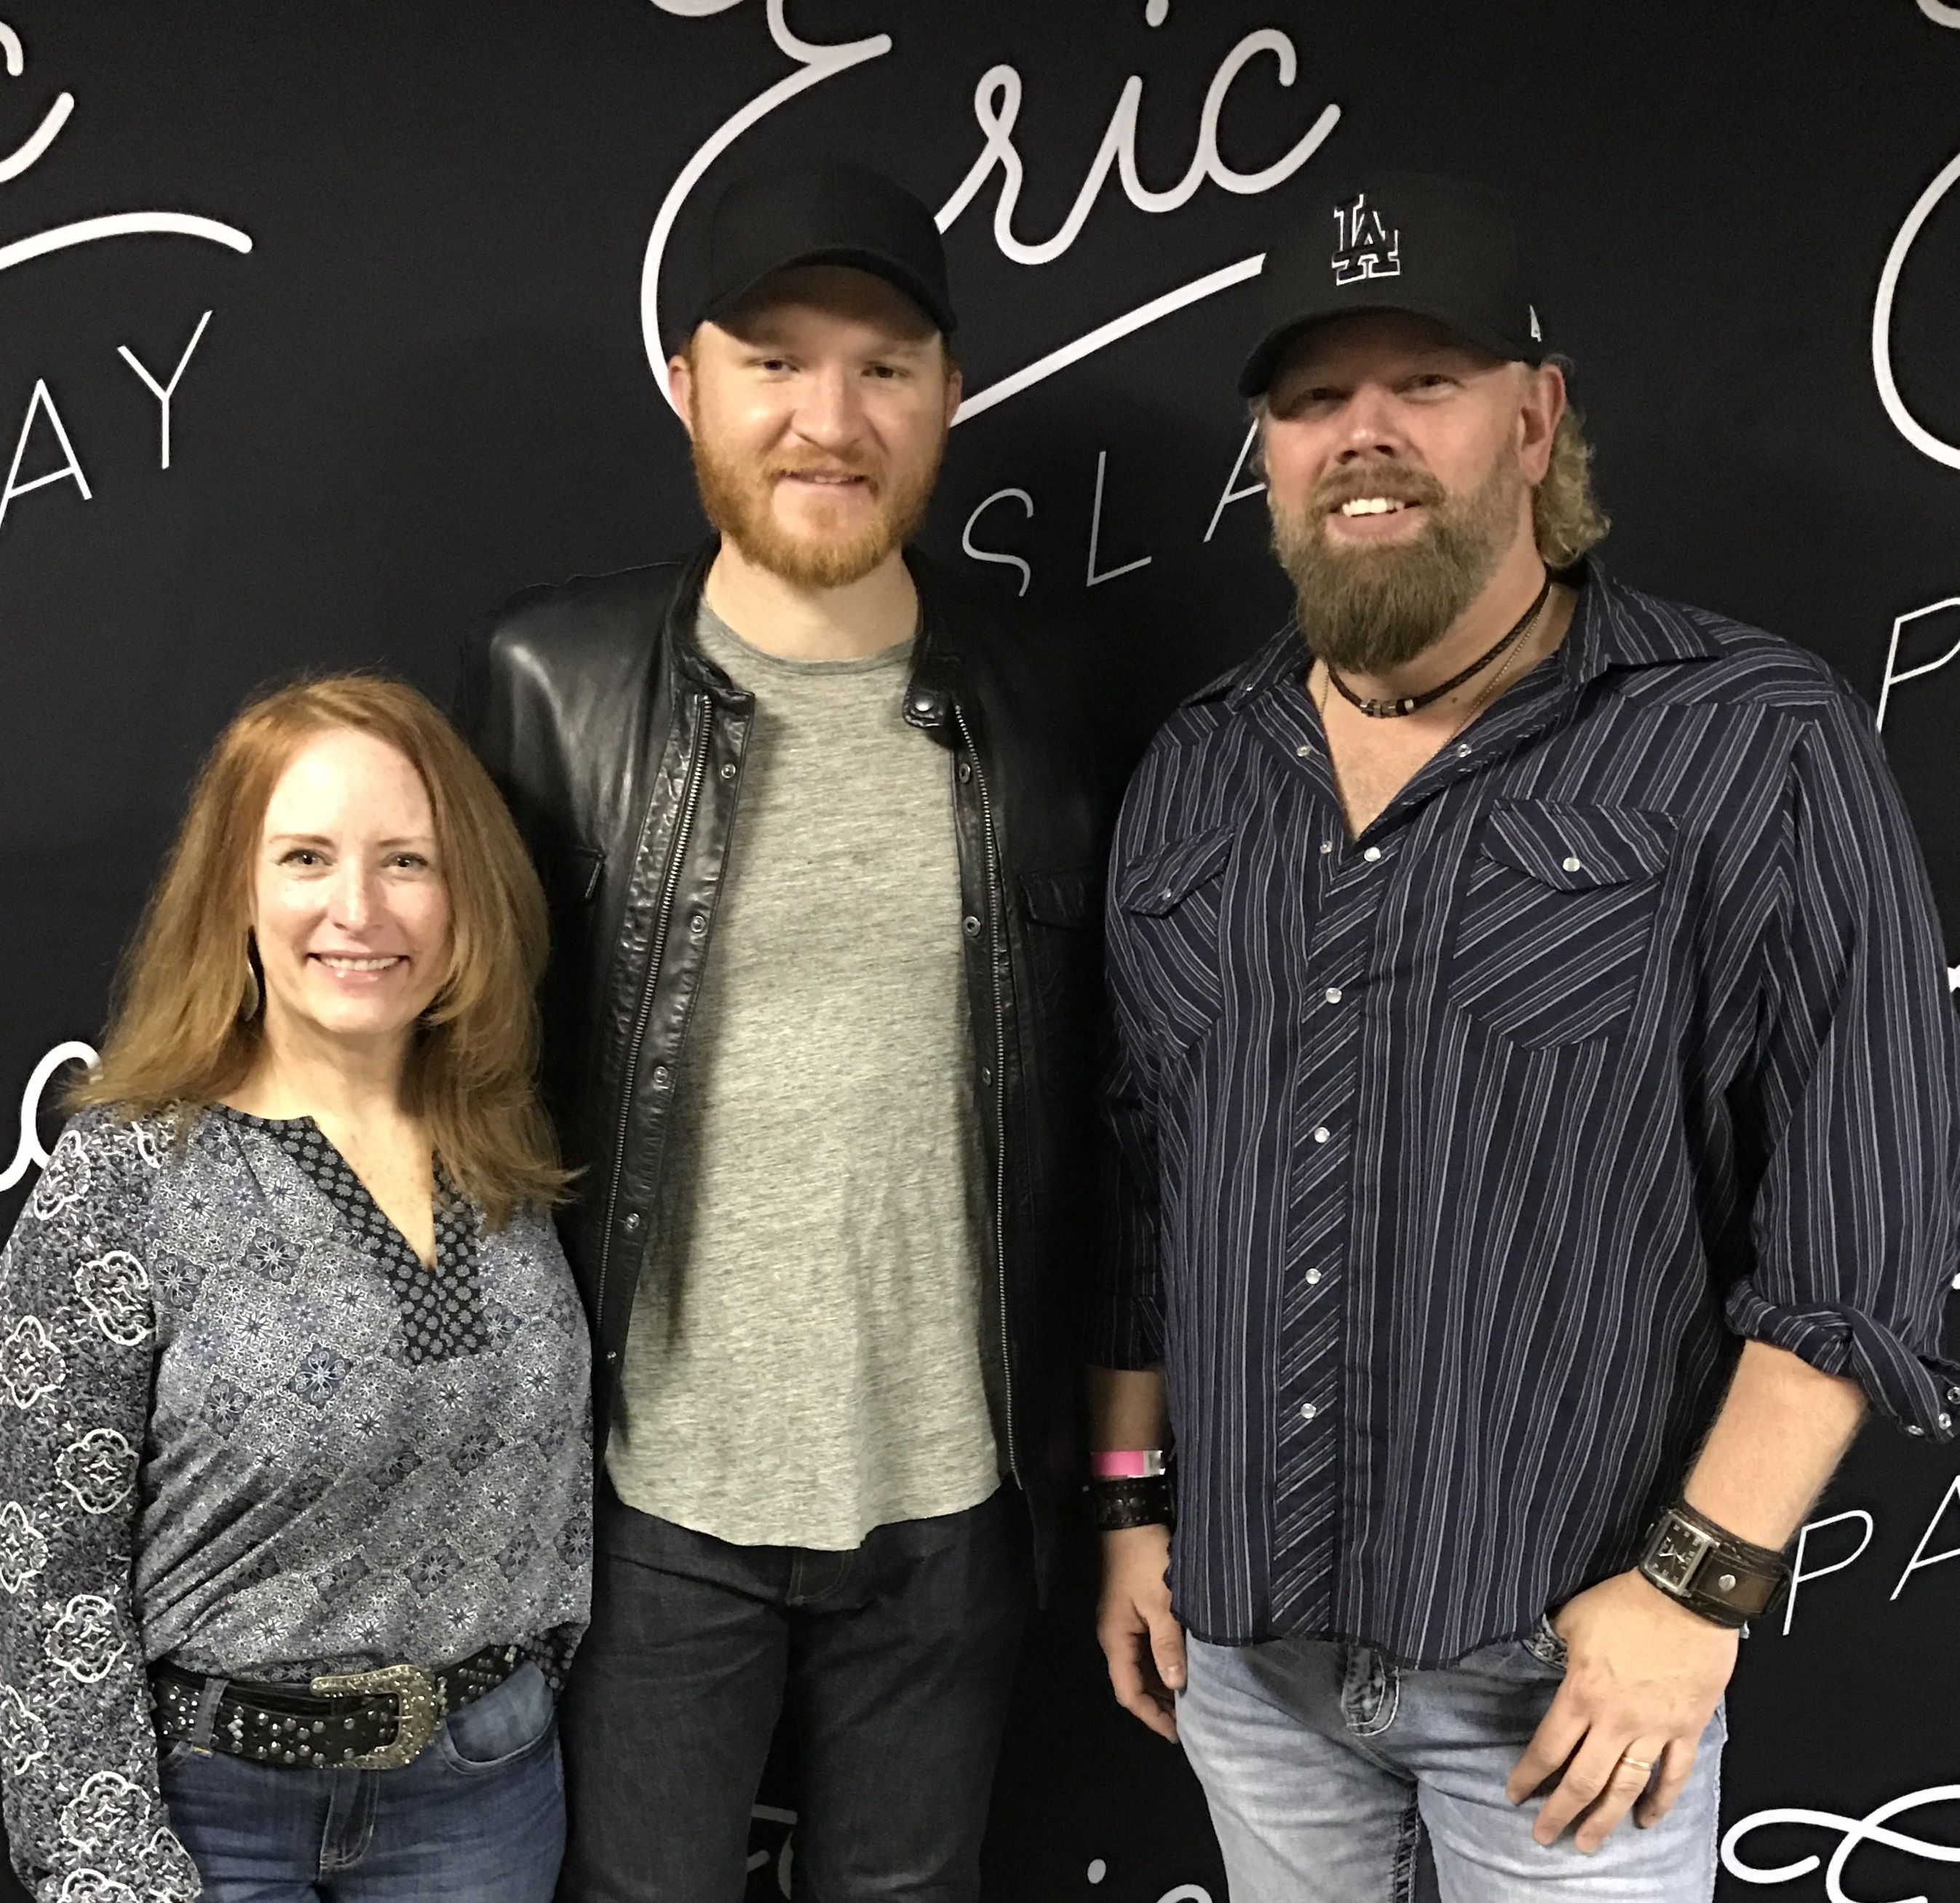 Eric Paslay Country Music Celebrities Eric